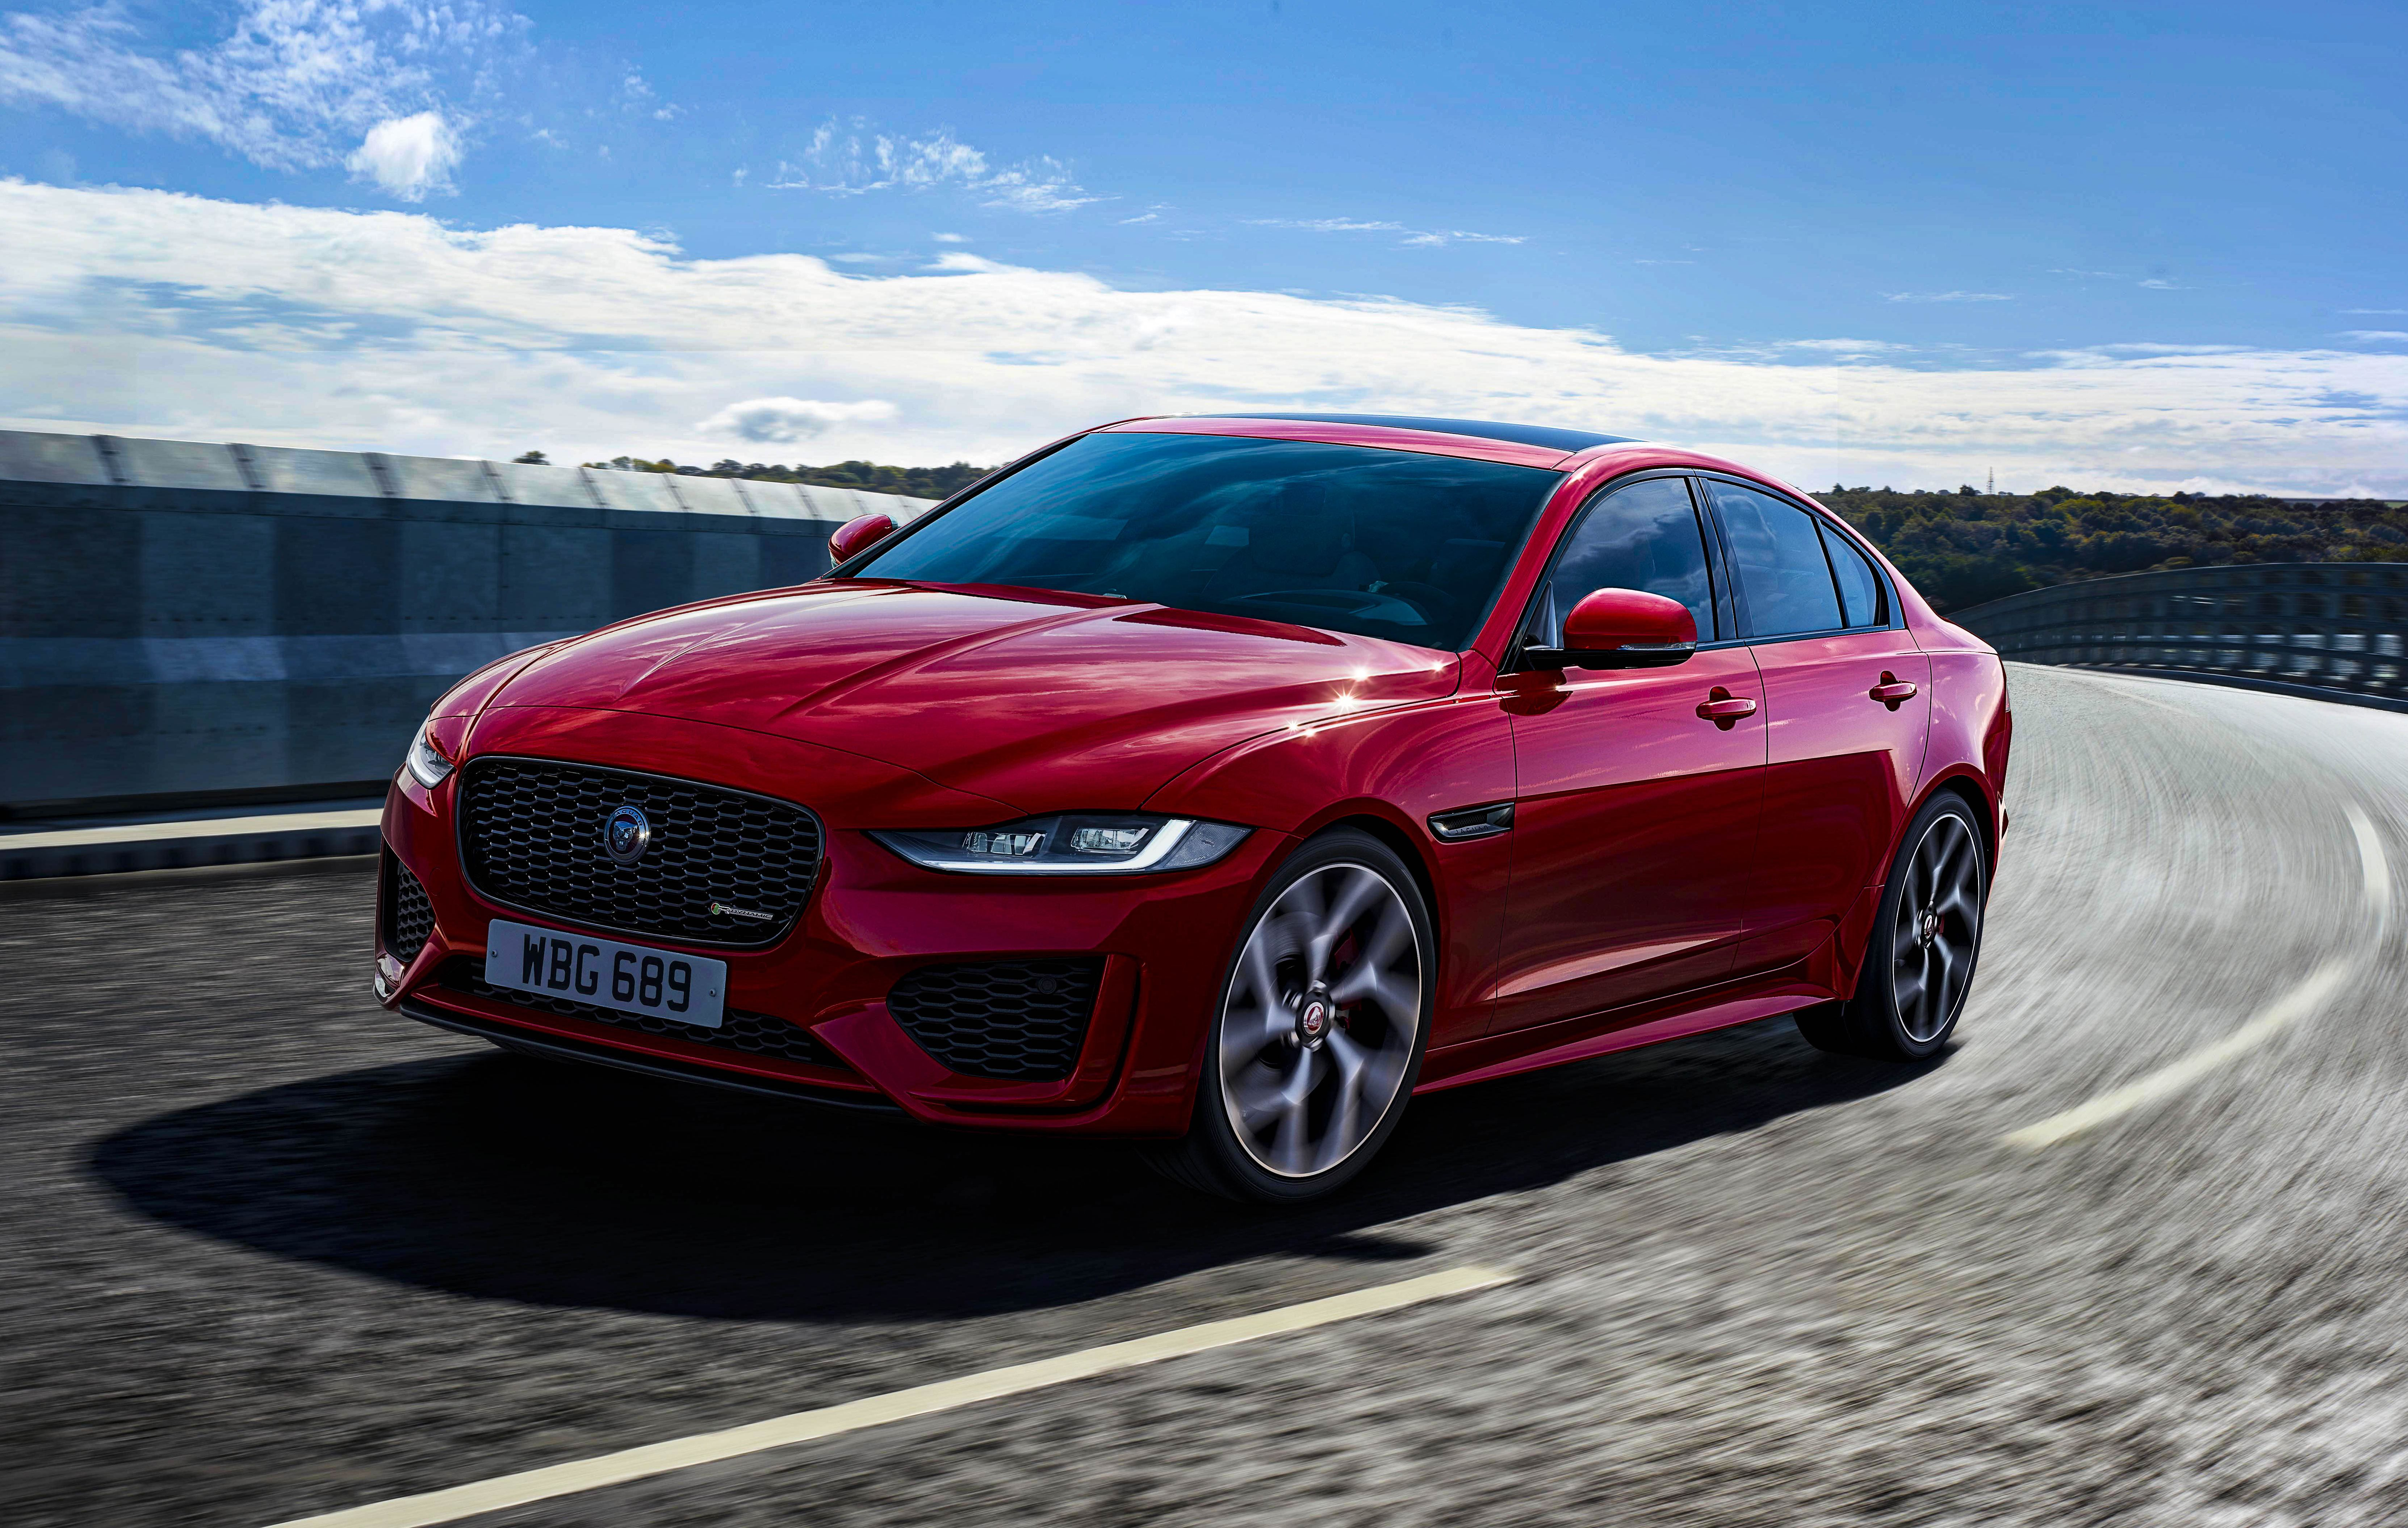 Jaguar Thinks There S Still Life In Saloons And Sports Cars And Won T Give Into The Suv Craze Top Speed Jaguar Xe Jaguar Luxury Sedan